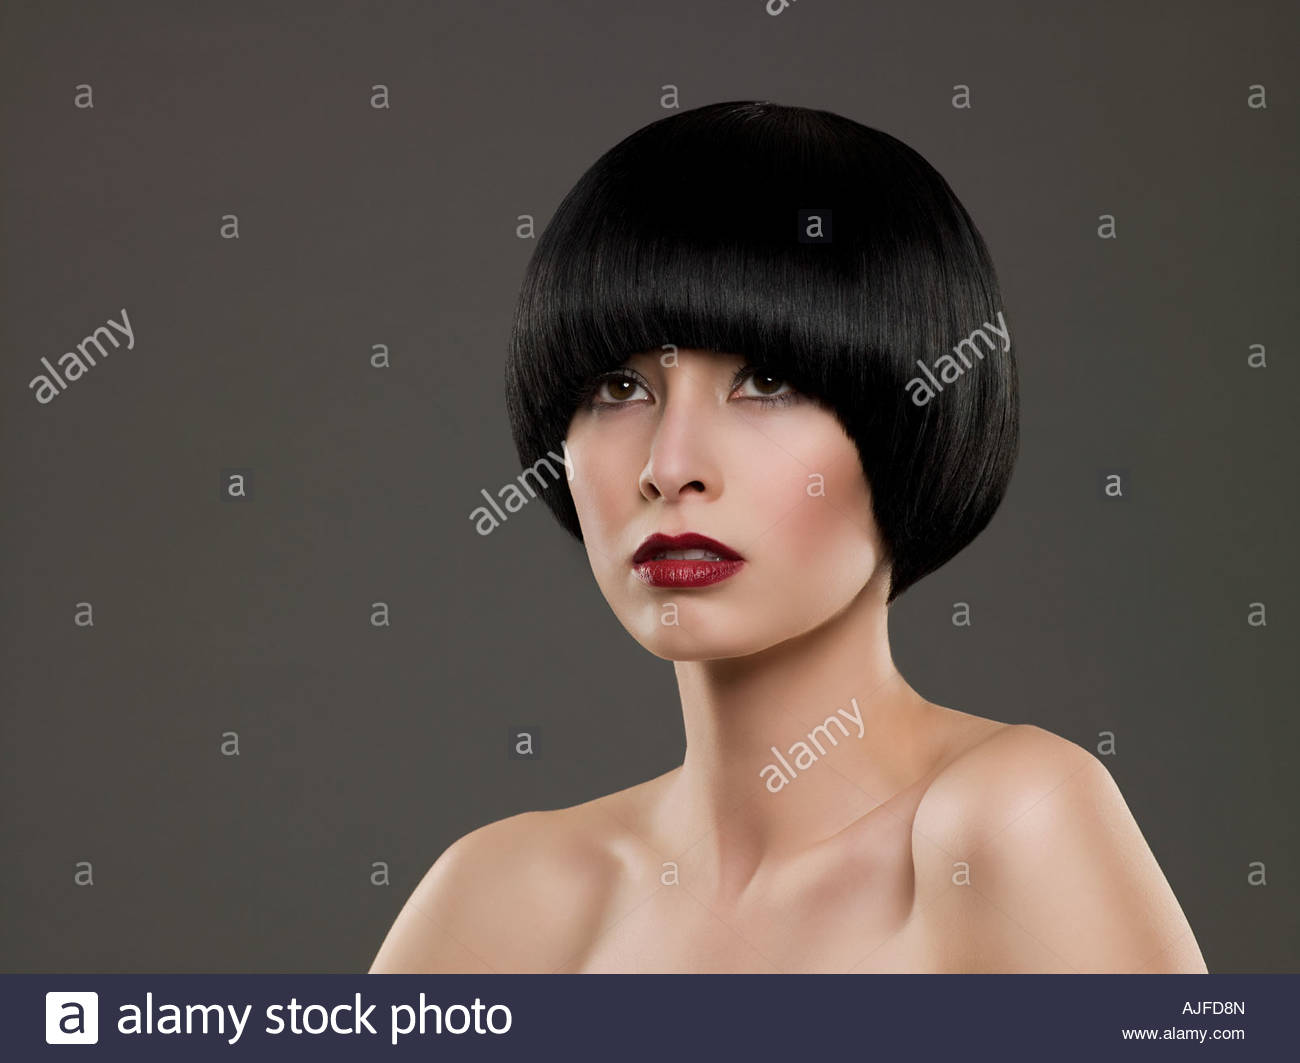 Portrait of a woman with a bob hairstyle - Stock Image